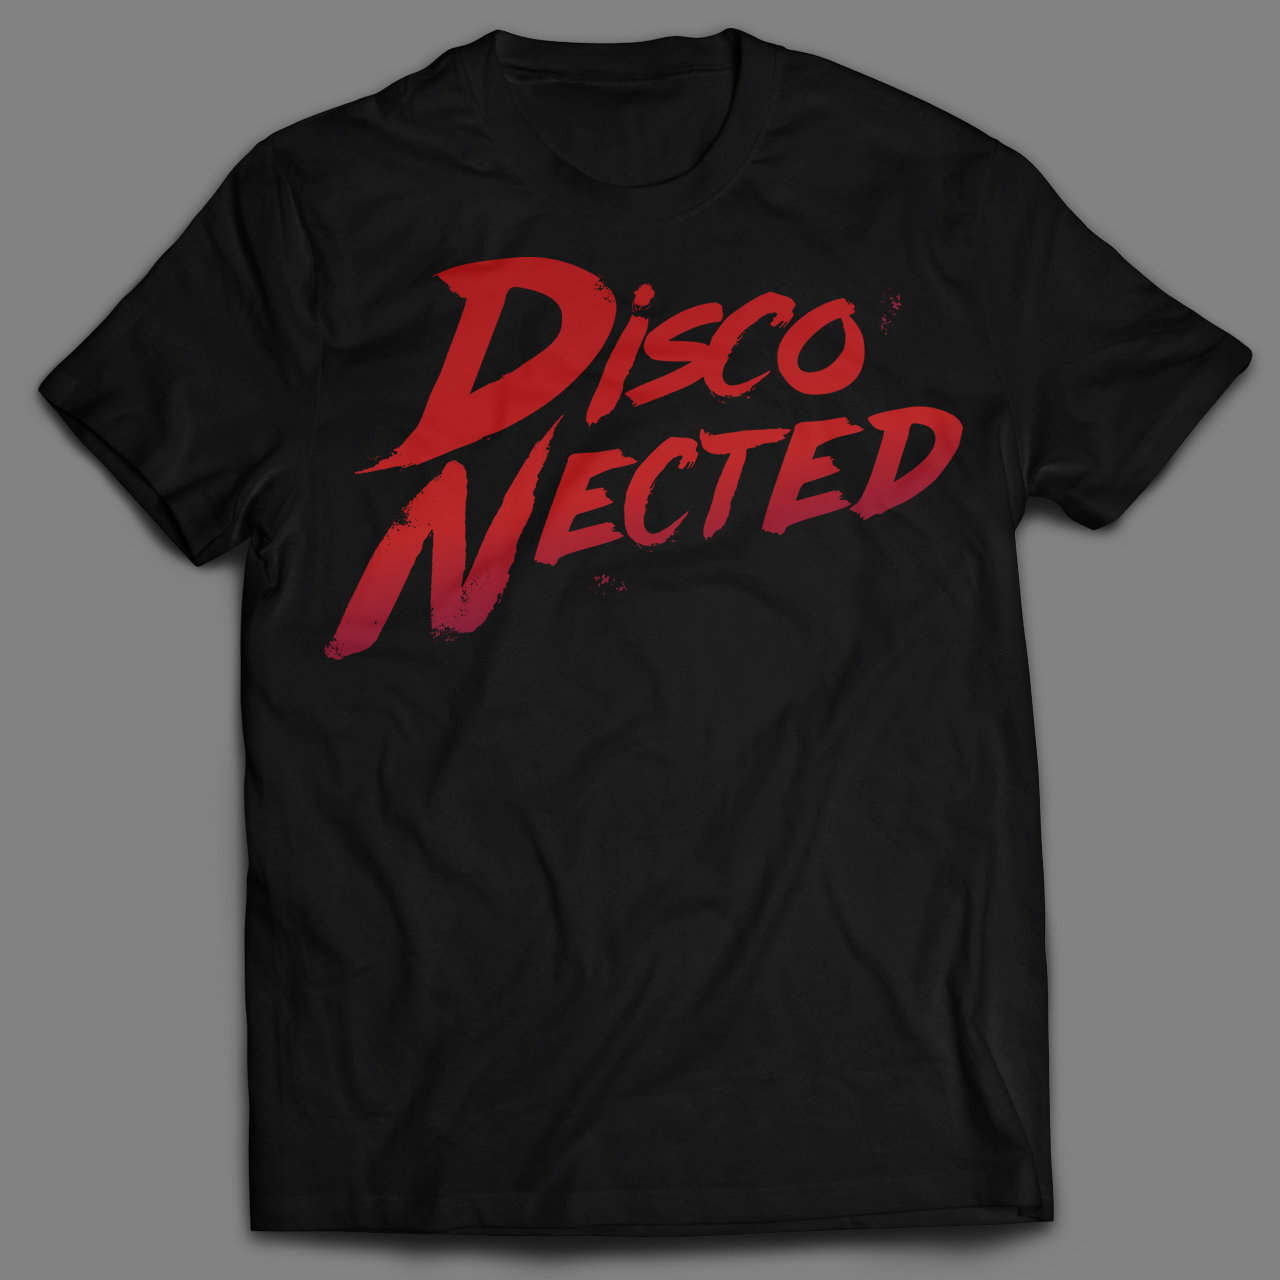 T-SHIRT DISCO-NECTED UNISEX 0DISCOUNISTD